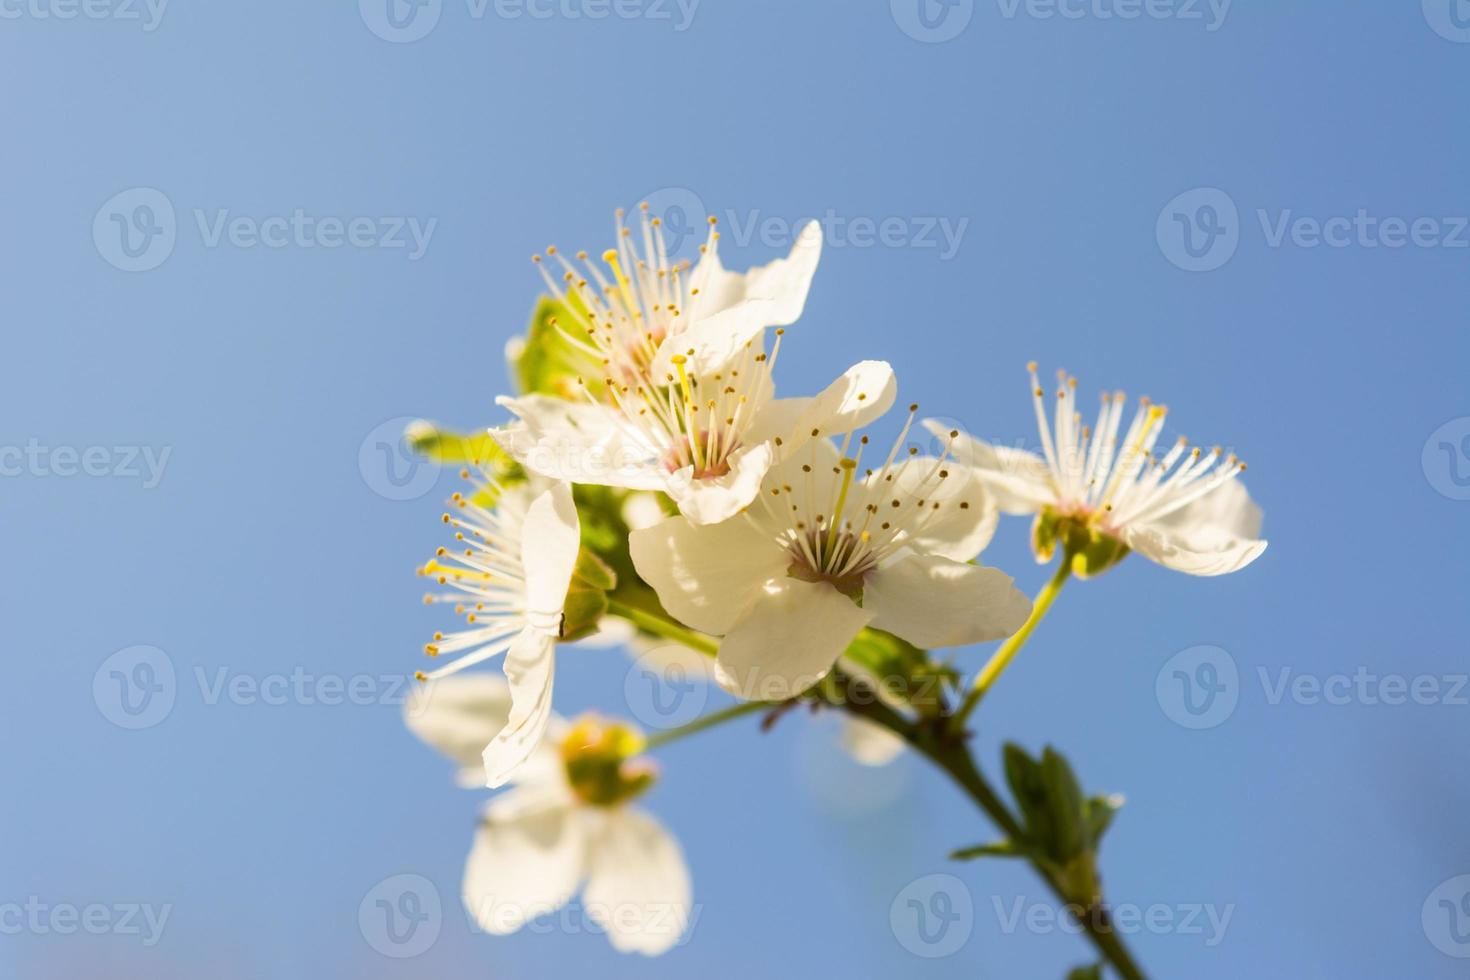 Blossoming branch close-up photo